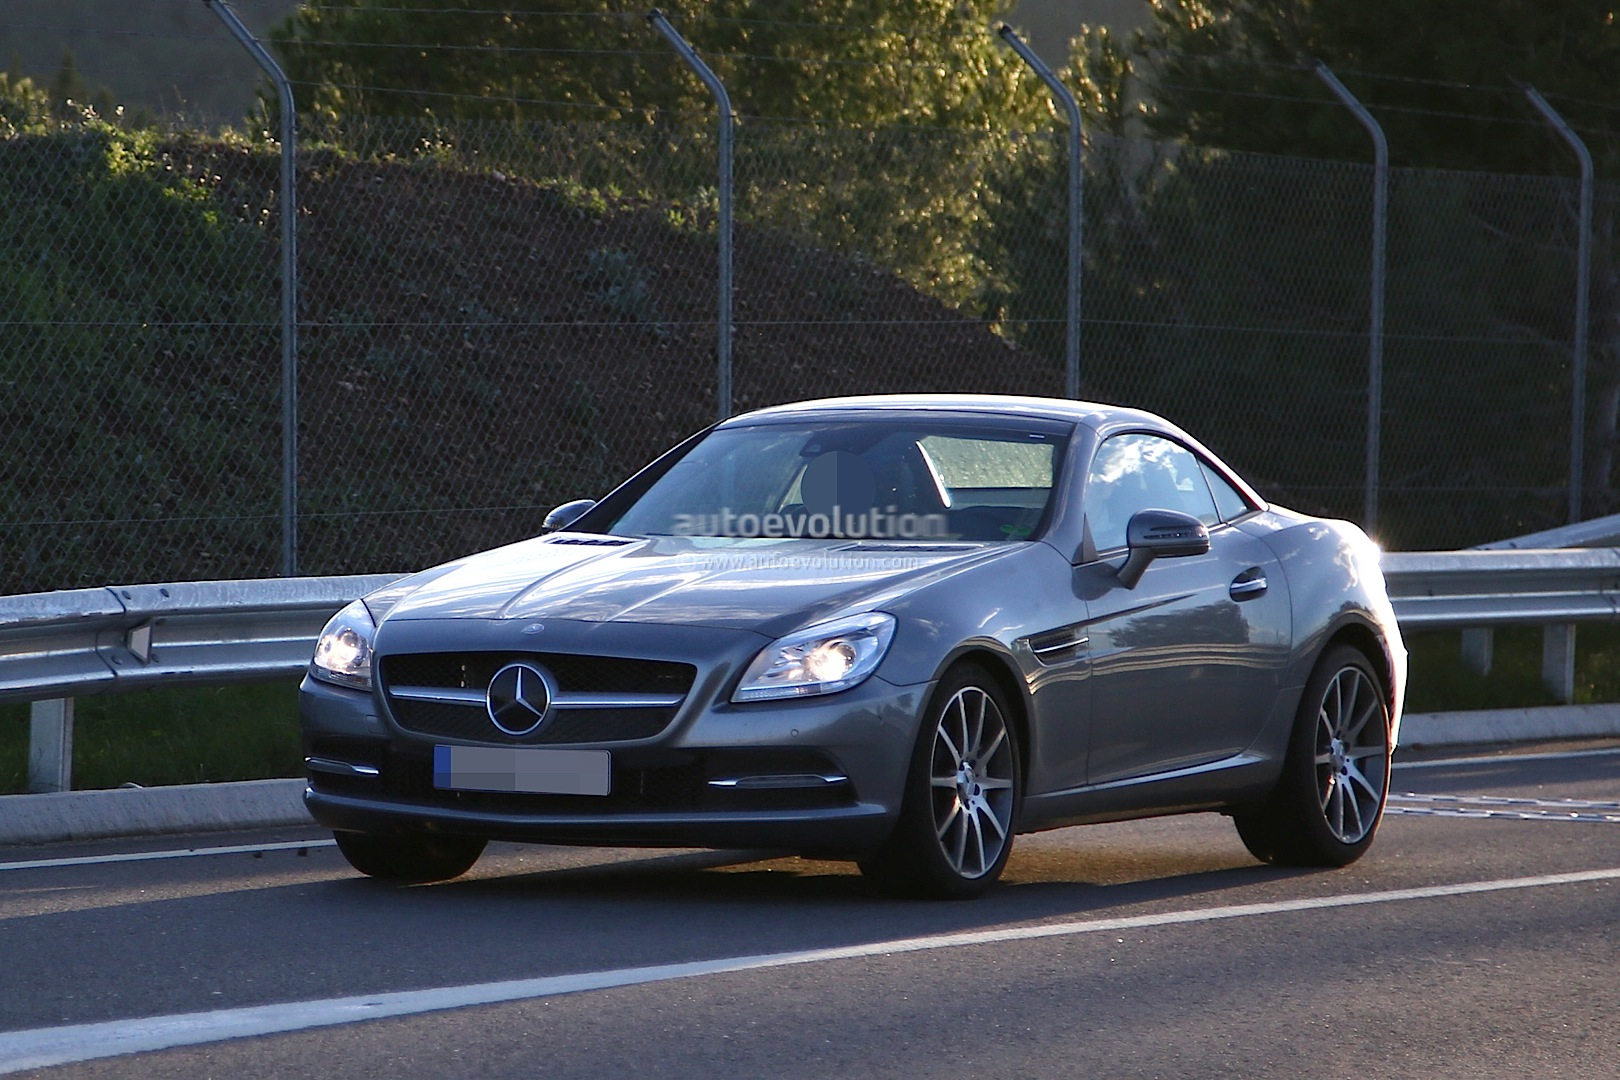 2016 mercedes benz slc is a mid cycle facelift for the slk for Mercedes benz news